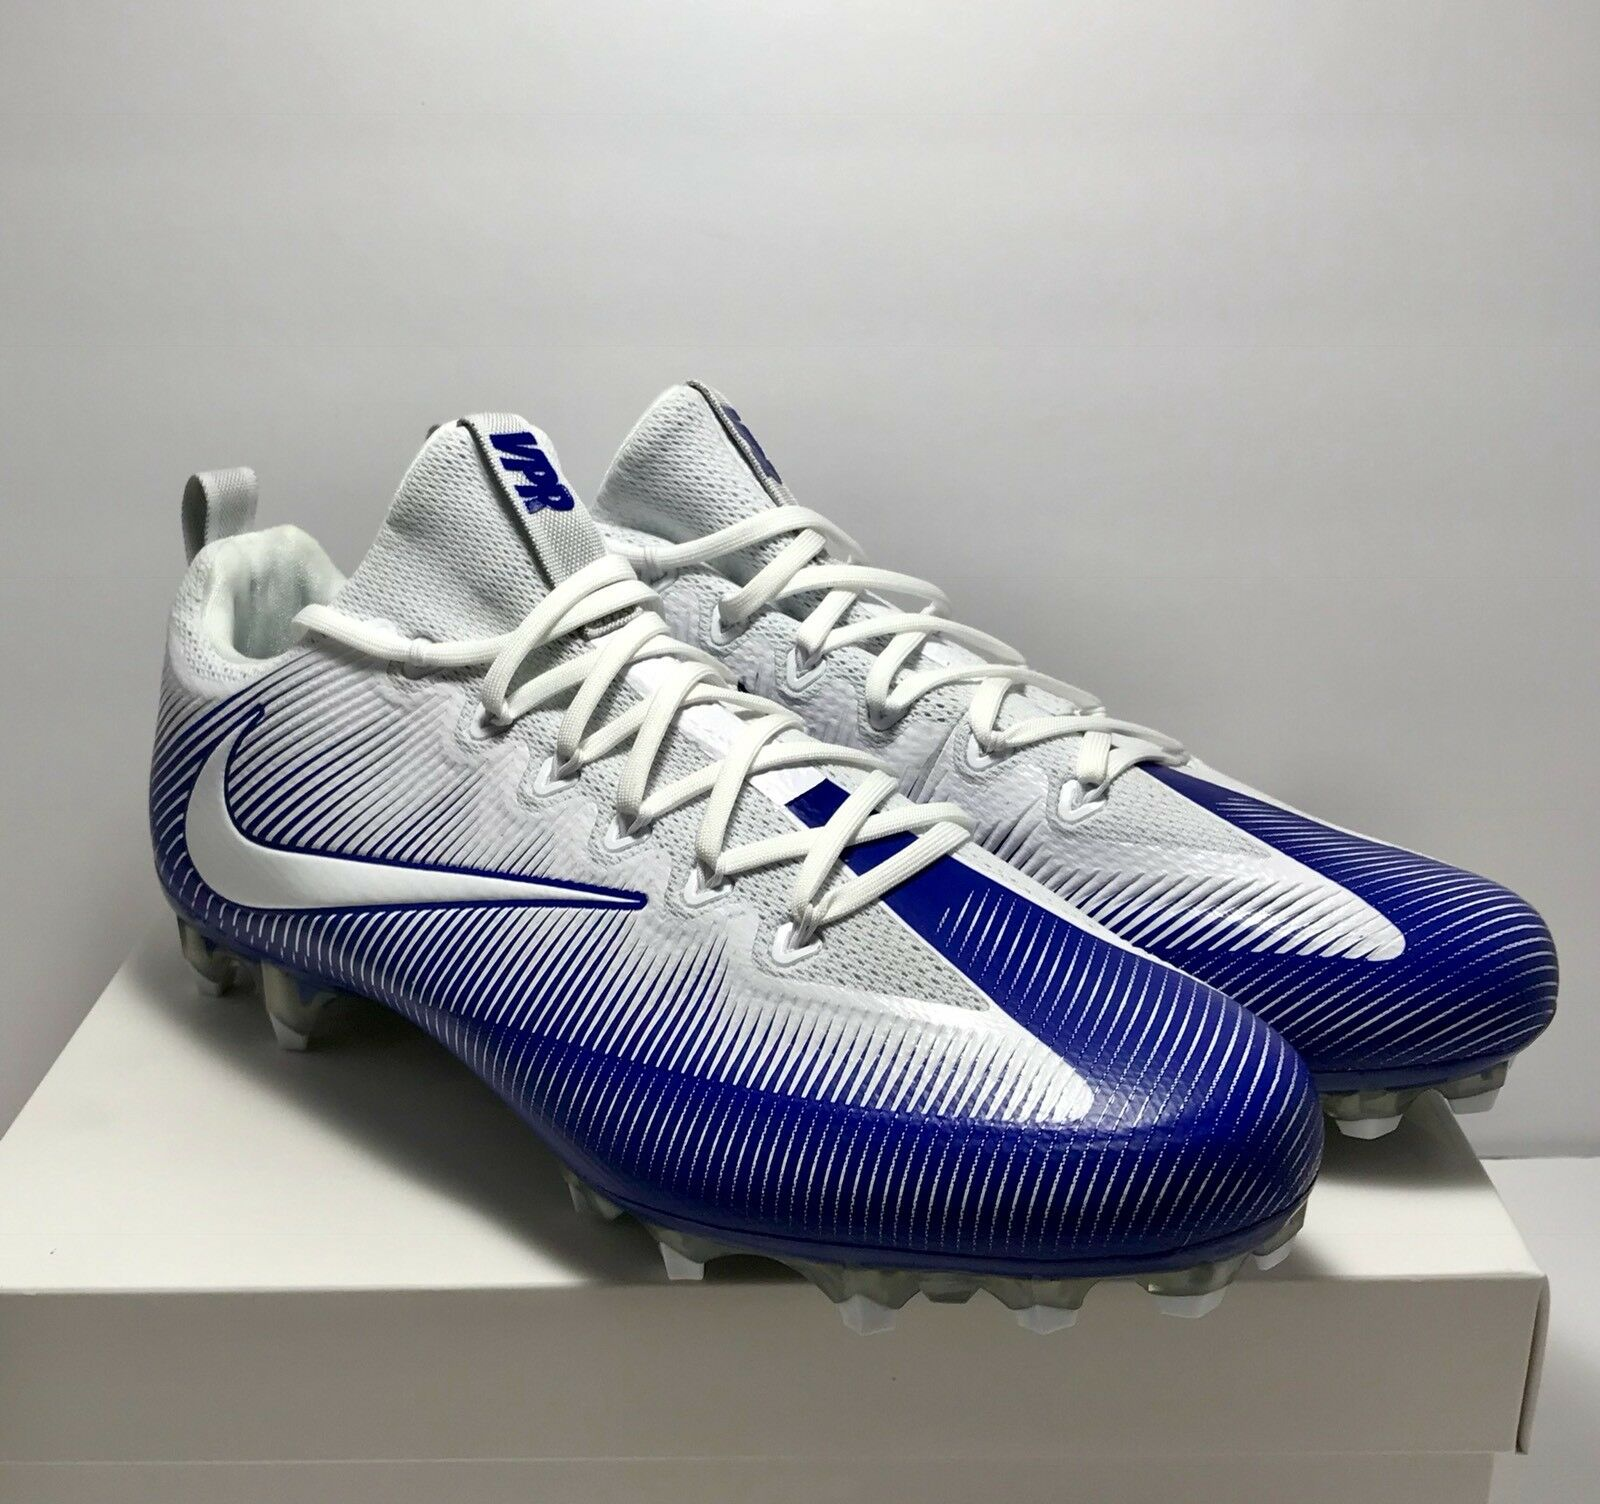 9fca65047 Nike Mens Size 14 Vapor Pro Low Football Cleats Cleats Cleats Untouchable  White Blue New 120 52646f